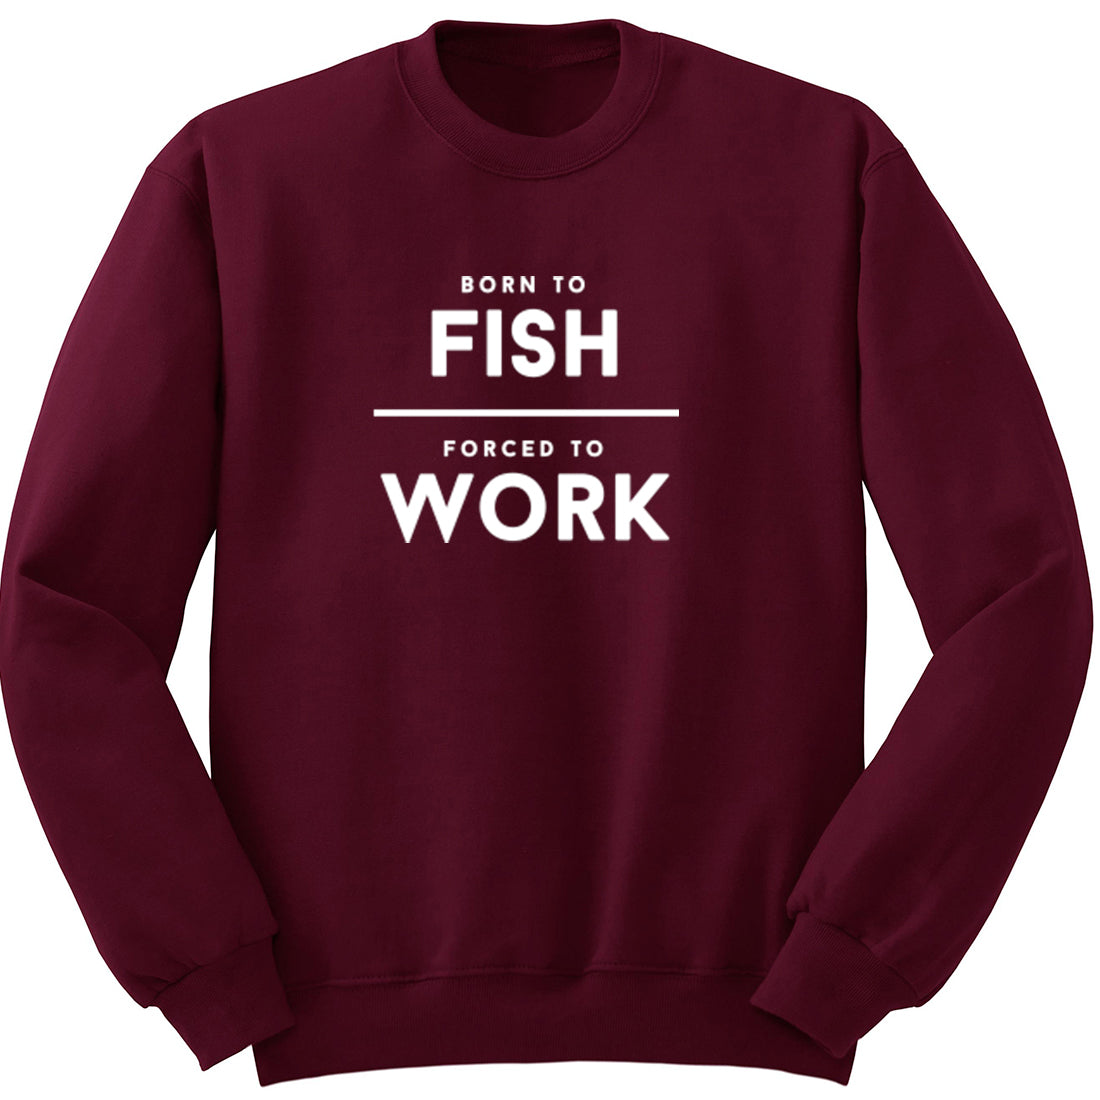 Born To Fish Forced To Work Unisex Jumper K2017 - Illustrated Identity Ltd.